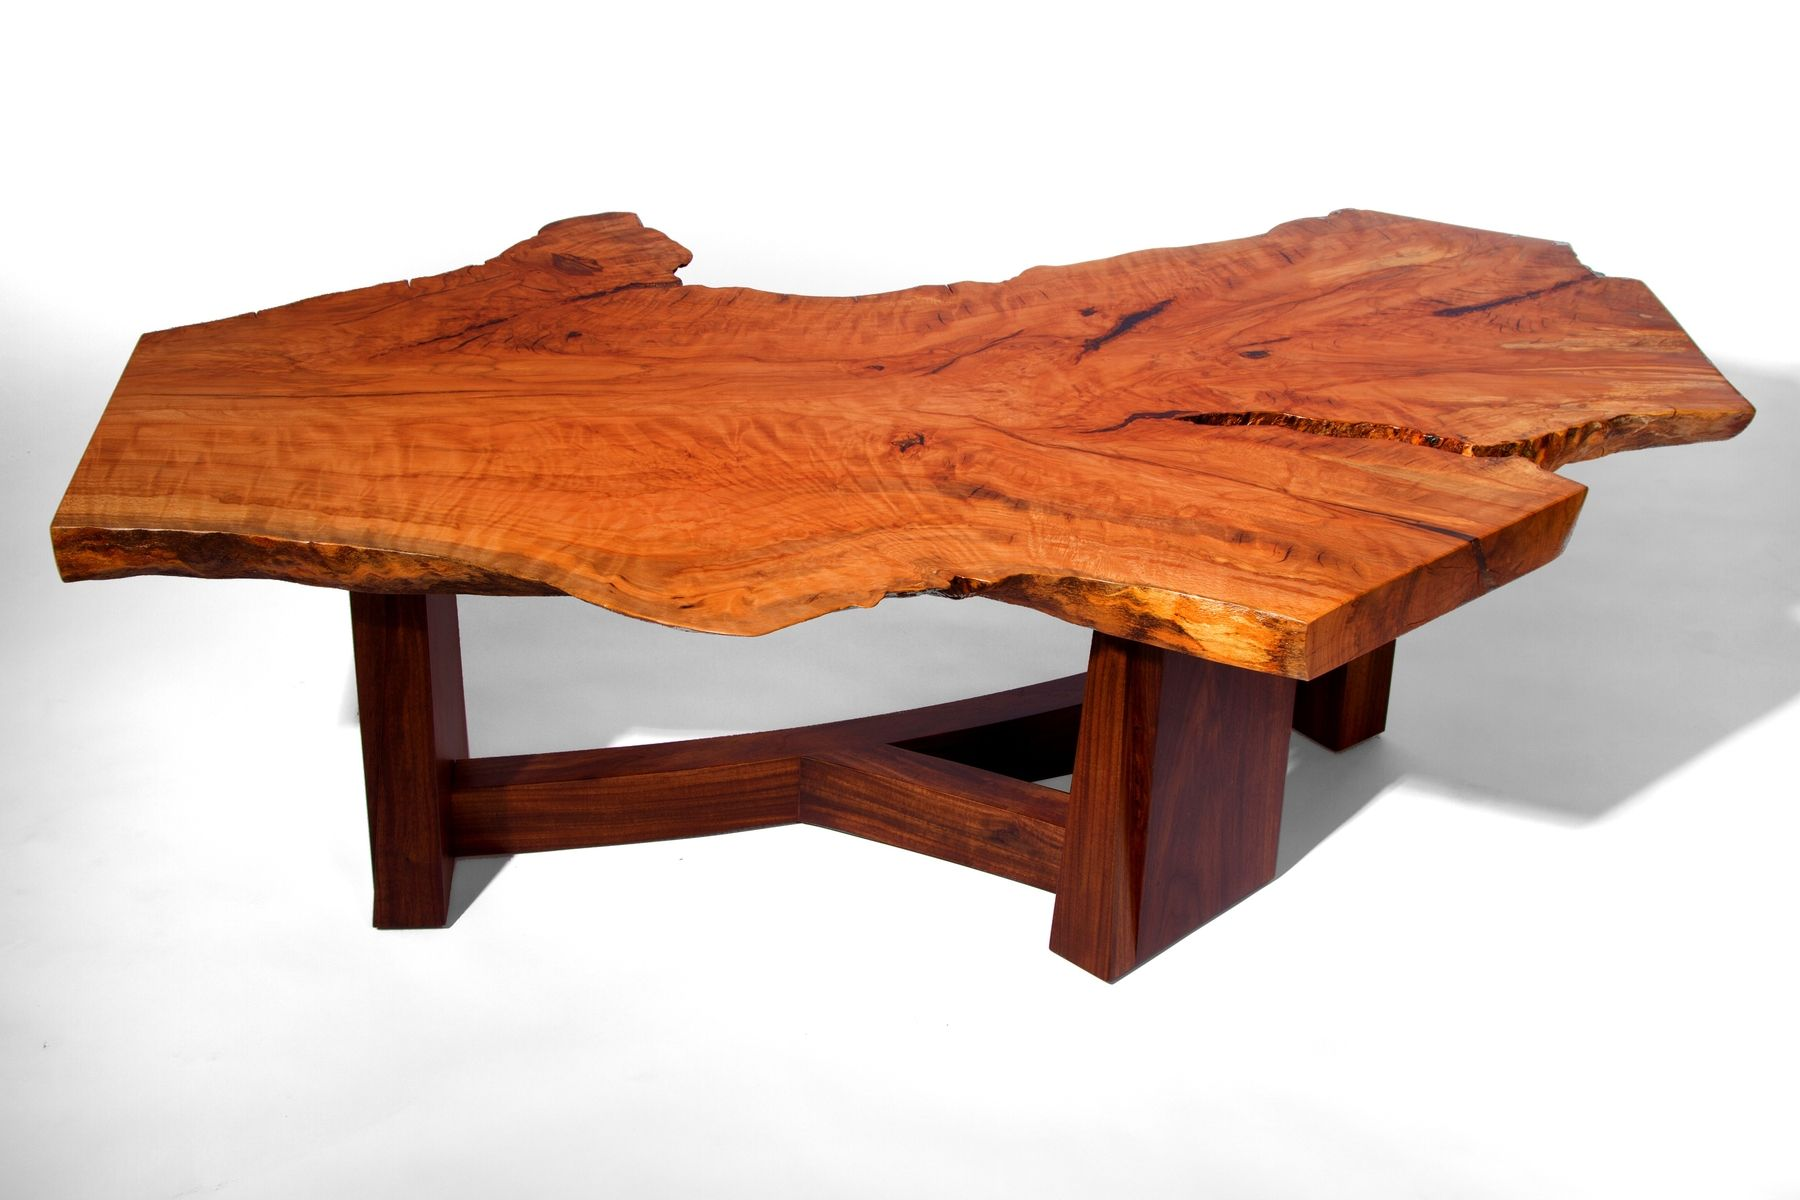 Live Edge Wood Furniture CustomMadecom - Concrete picnic table forms